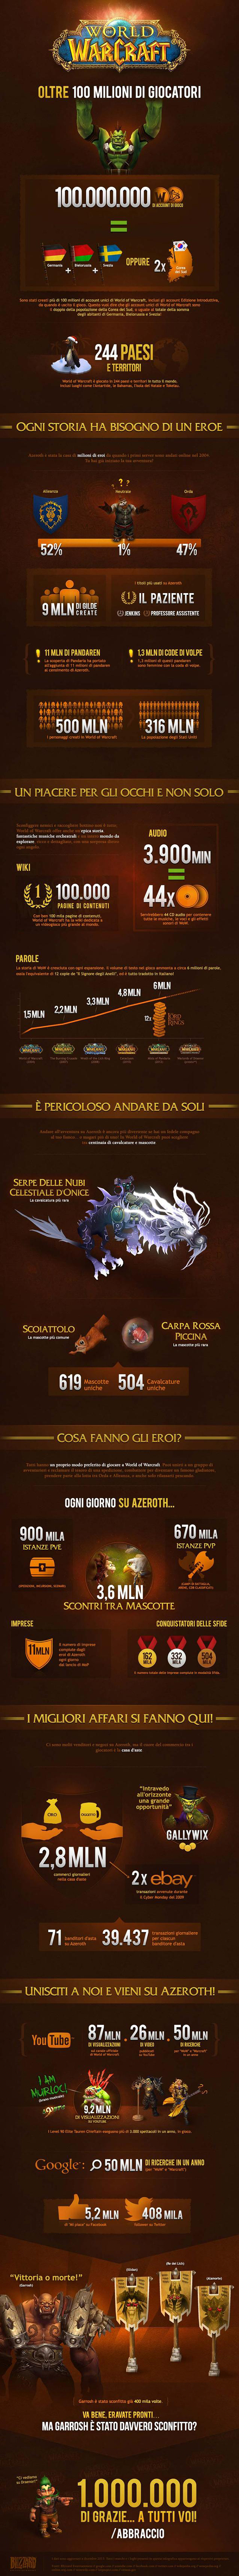 World of Warcraft 10 anni in infografica